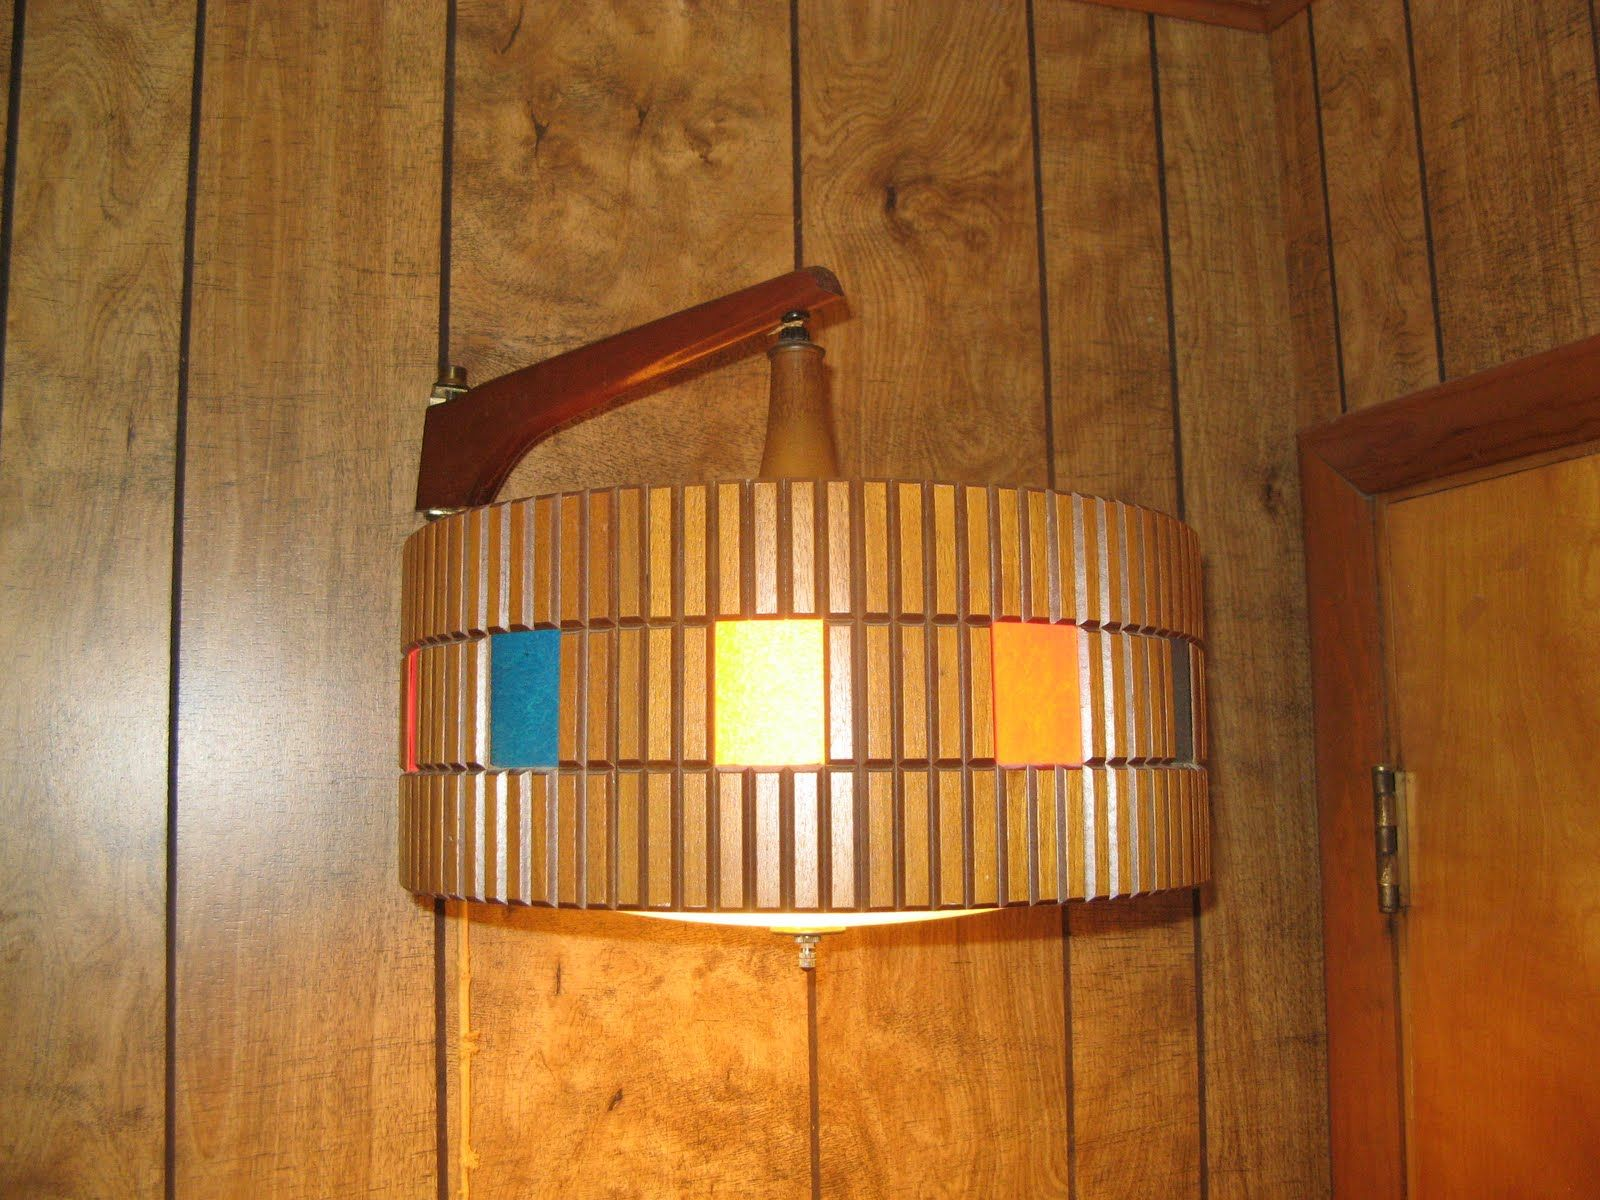 Retro wall lamps with cord home depot with nice snair drum shape retro wall lamps with cord home depot with nice snair drum shape wall lamp design aloadofball Choice Image